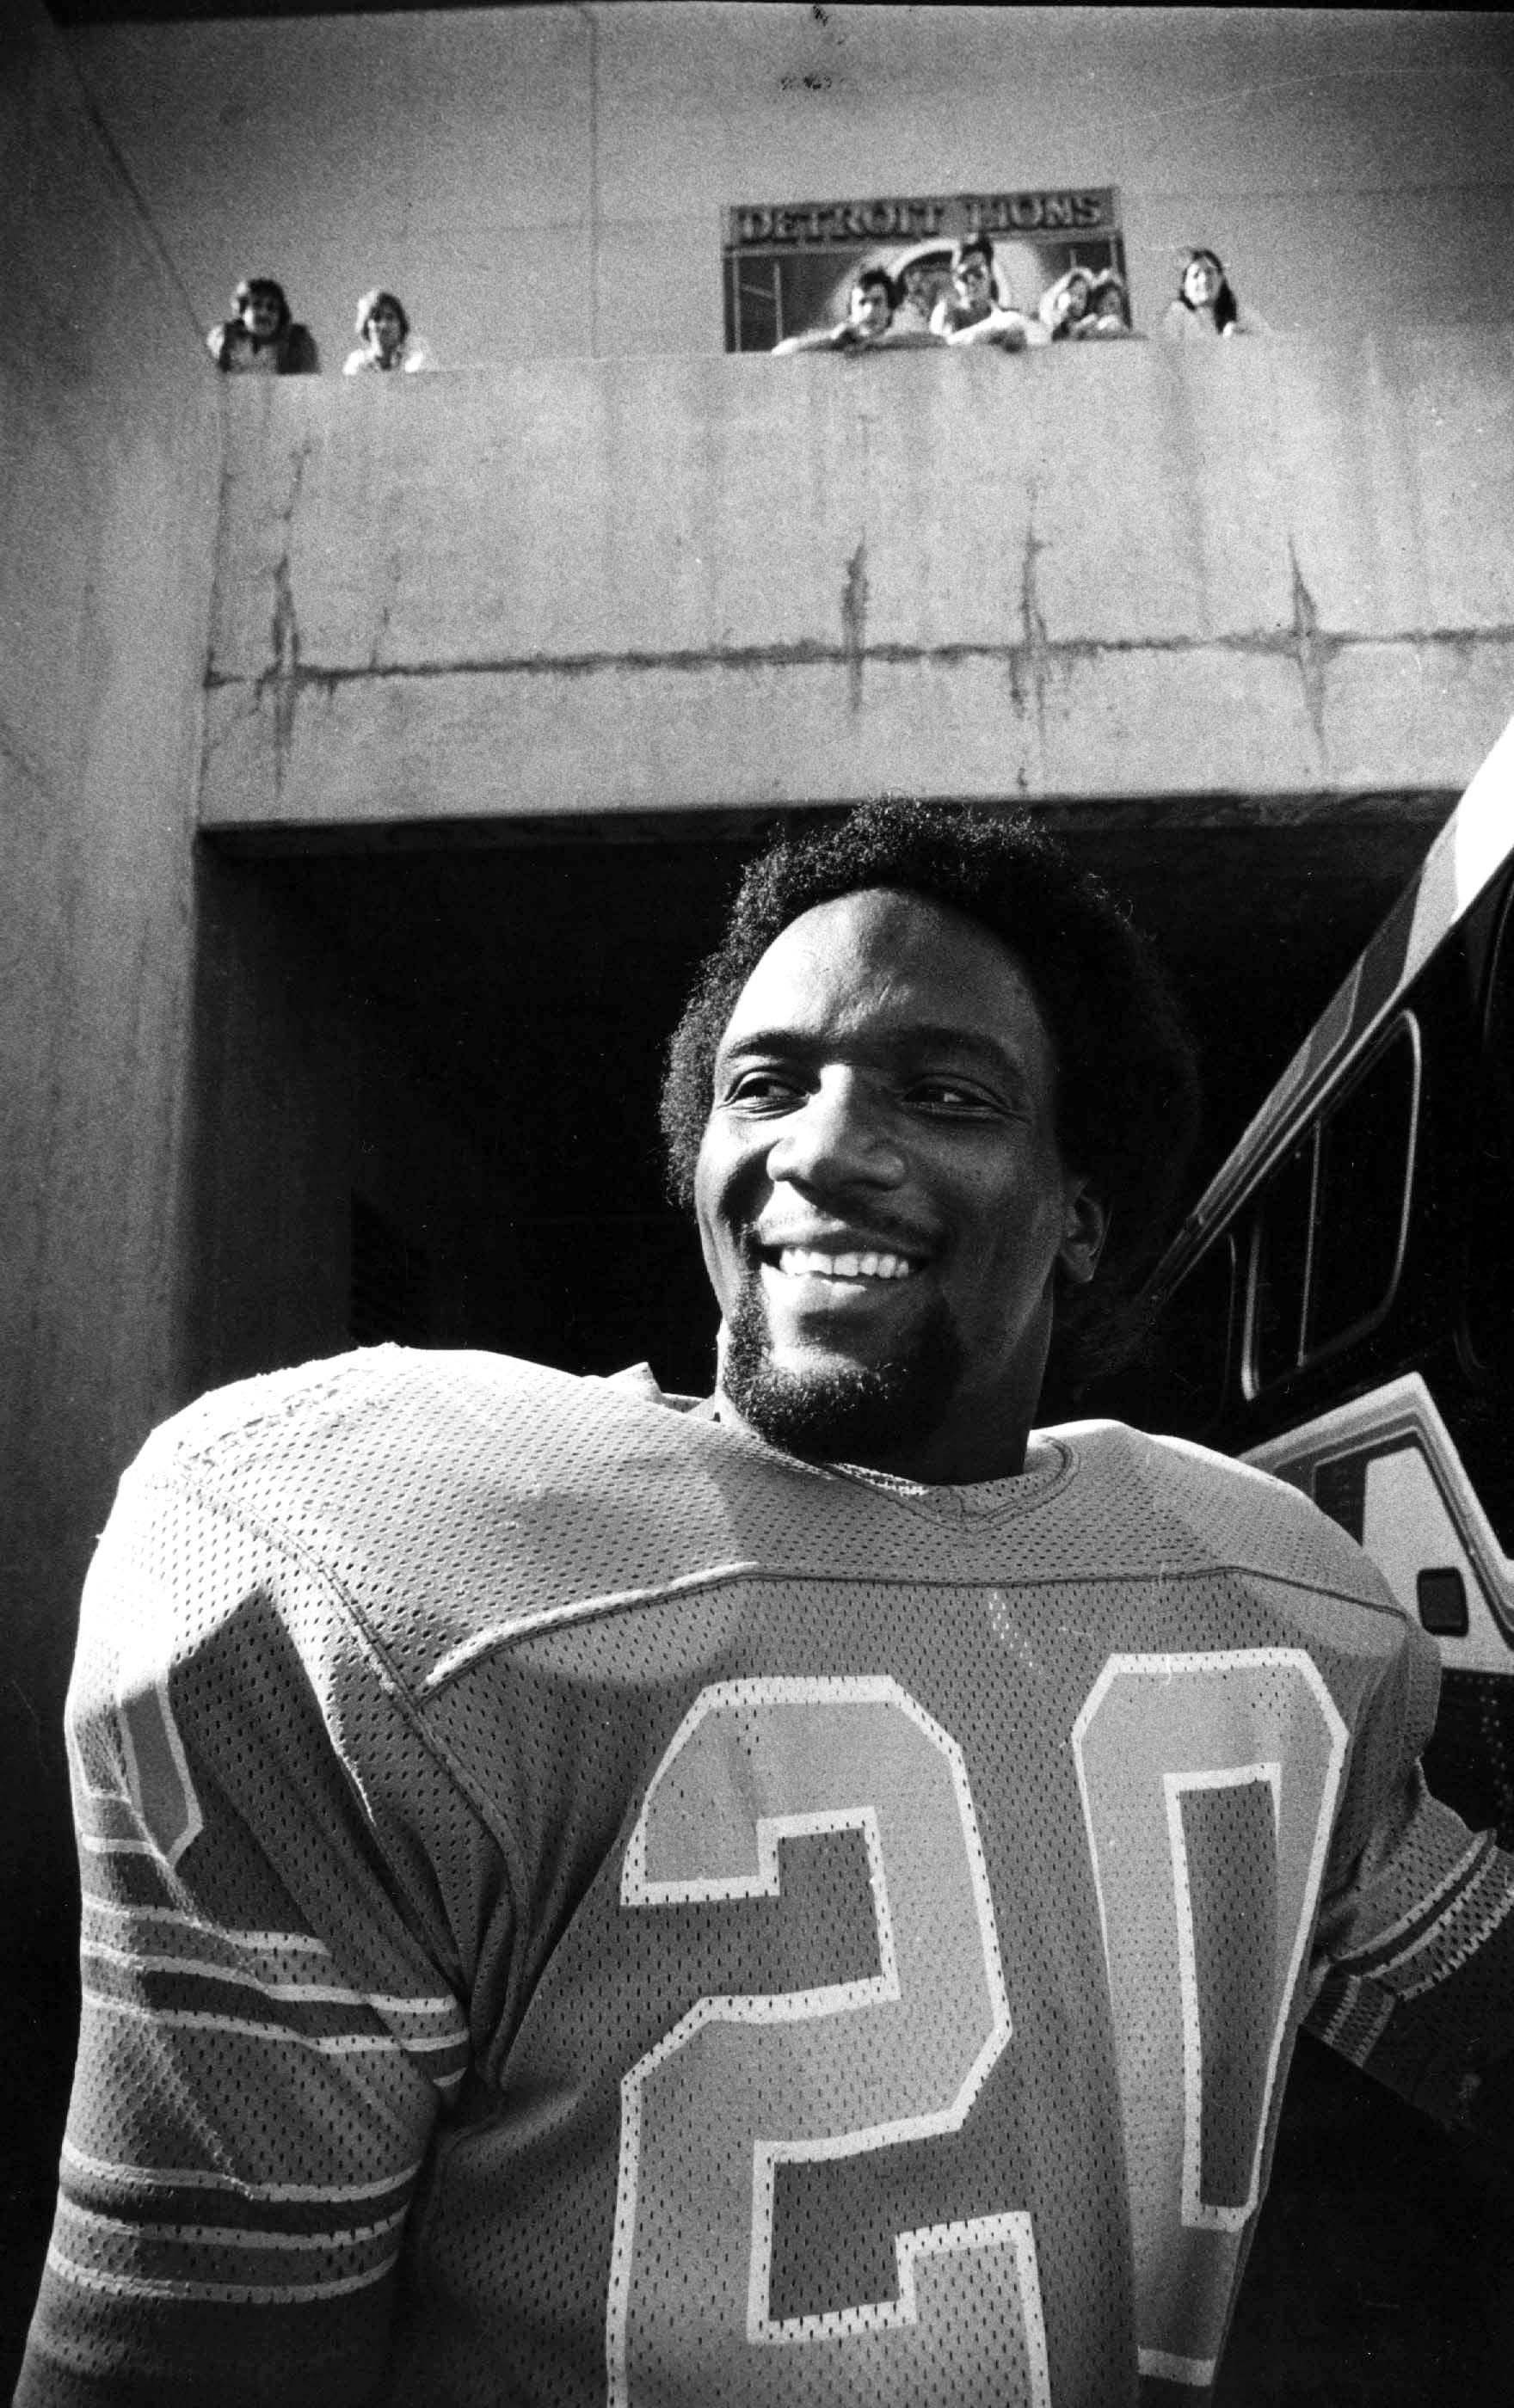 Billy Sims, star running back for the Detroit Lions